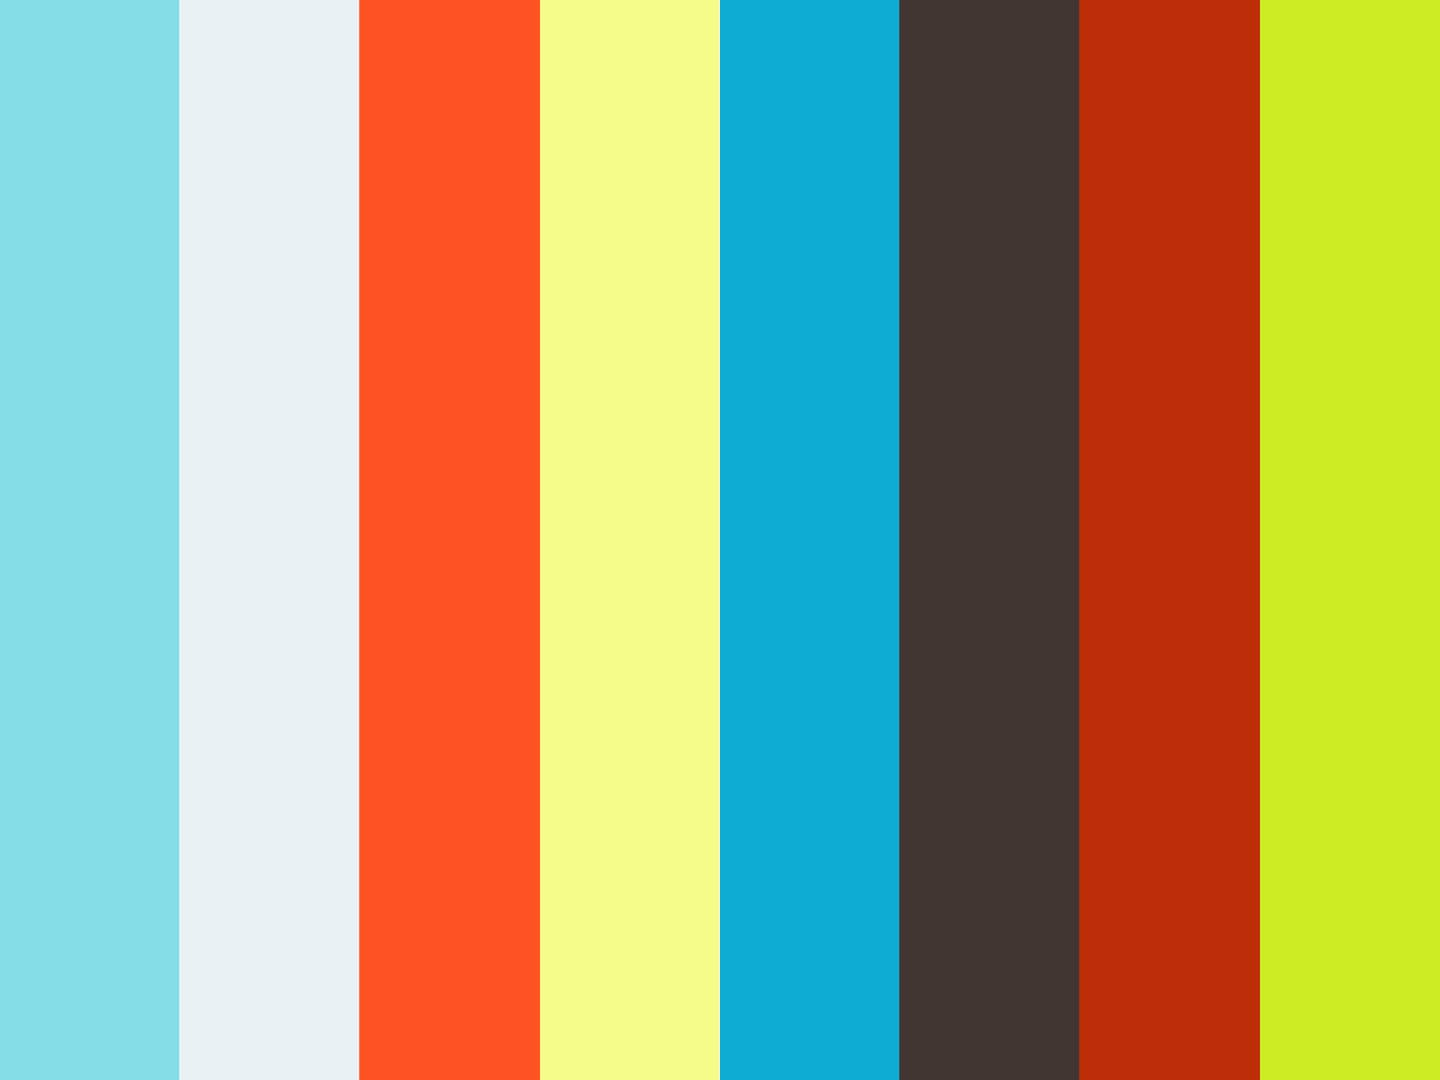 Servicio t cnico general electric madrid 915324556 on vimeo - Servicio tecnico general electric ...